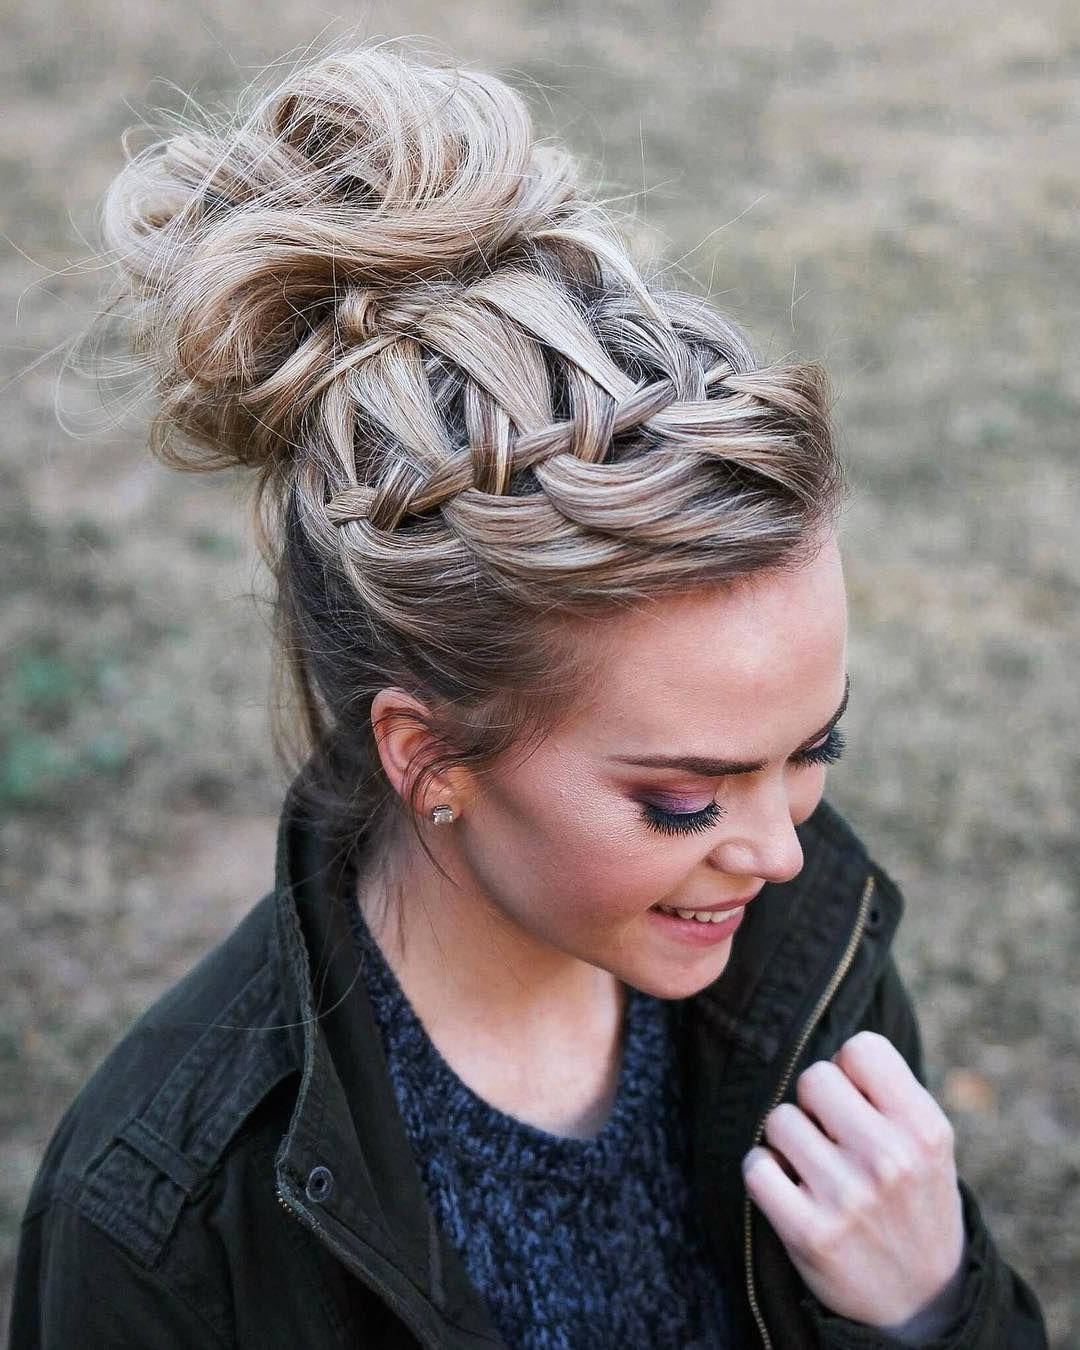 Popular High Waterfall Braid Hairstyles In Waterfall Braid High Bun Throwback One Of My Favorite Pics I (View 3 of 20)